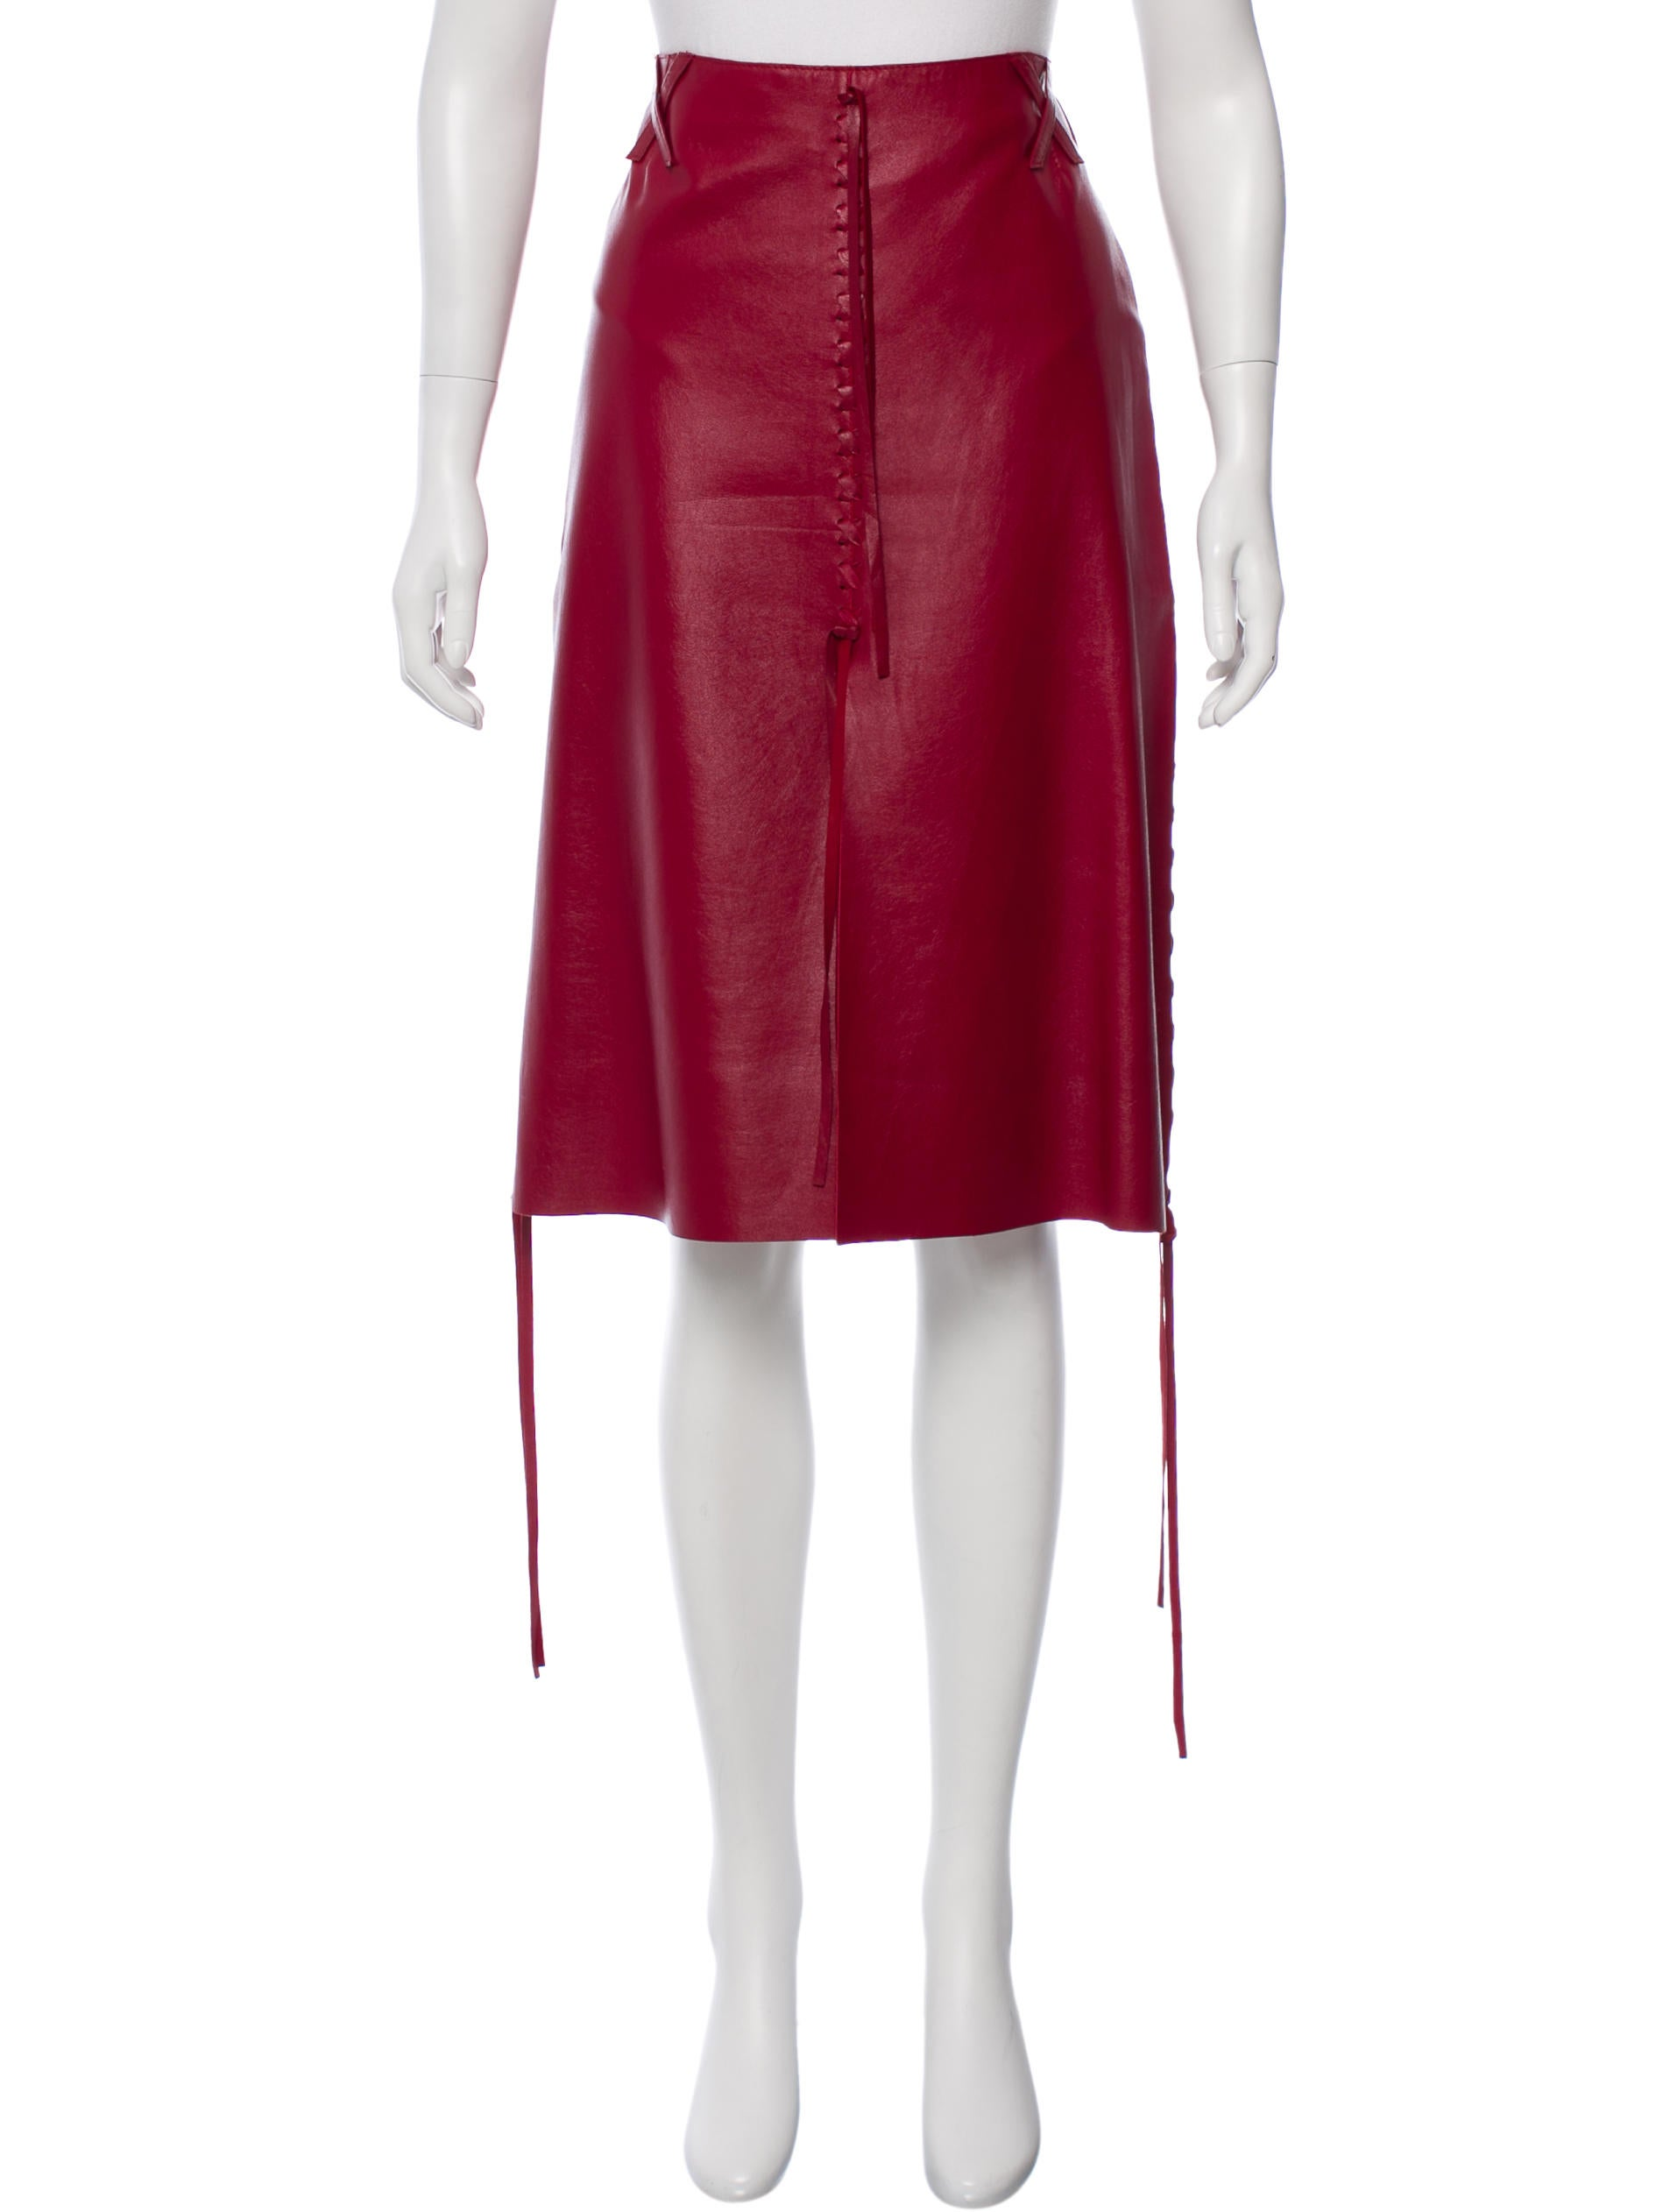 dolce gabbana lace up leather skirt w tags clothing